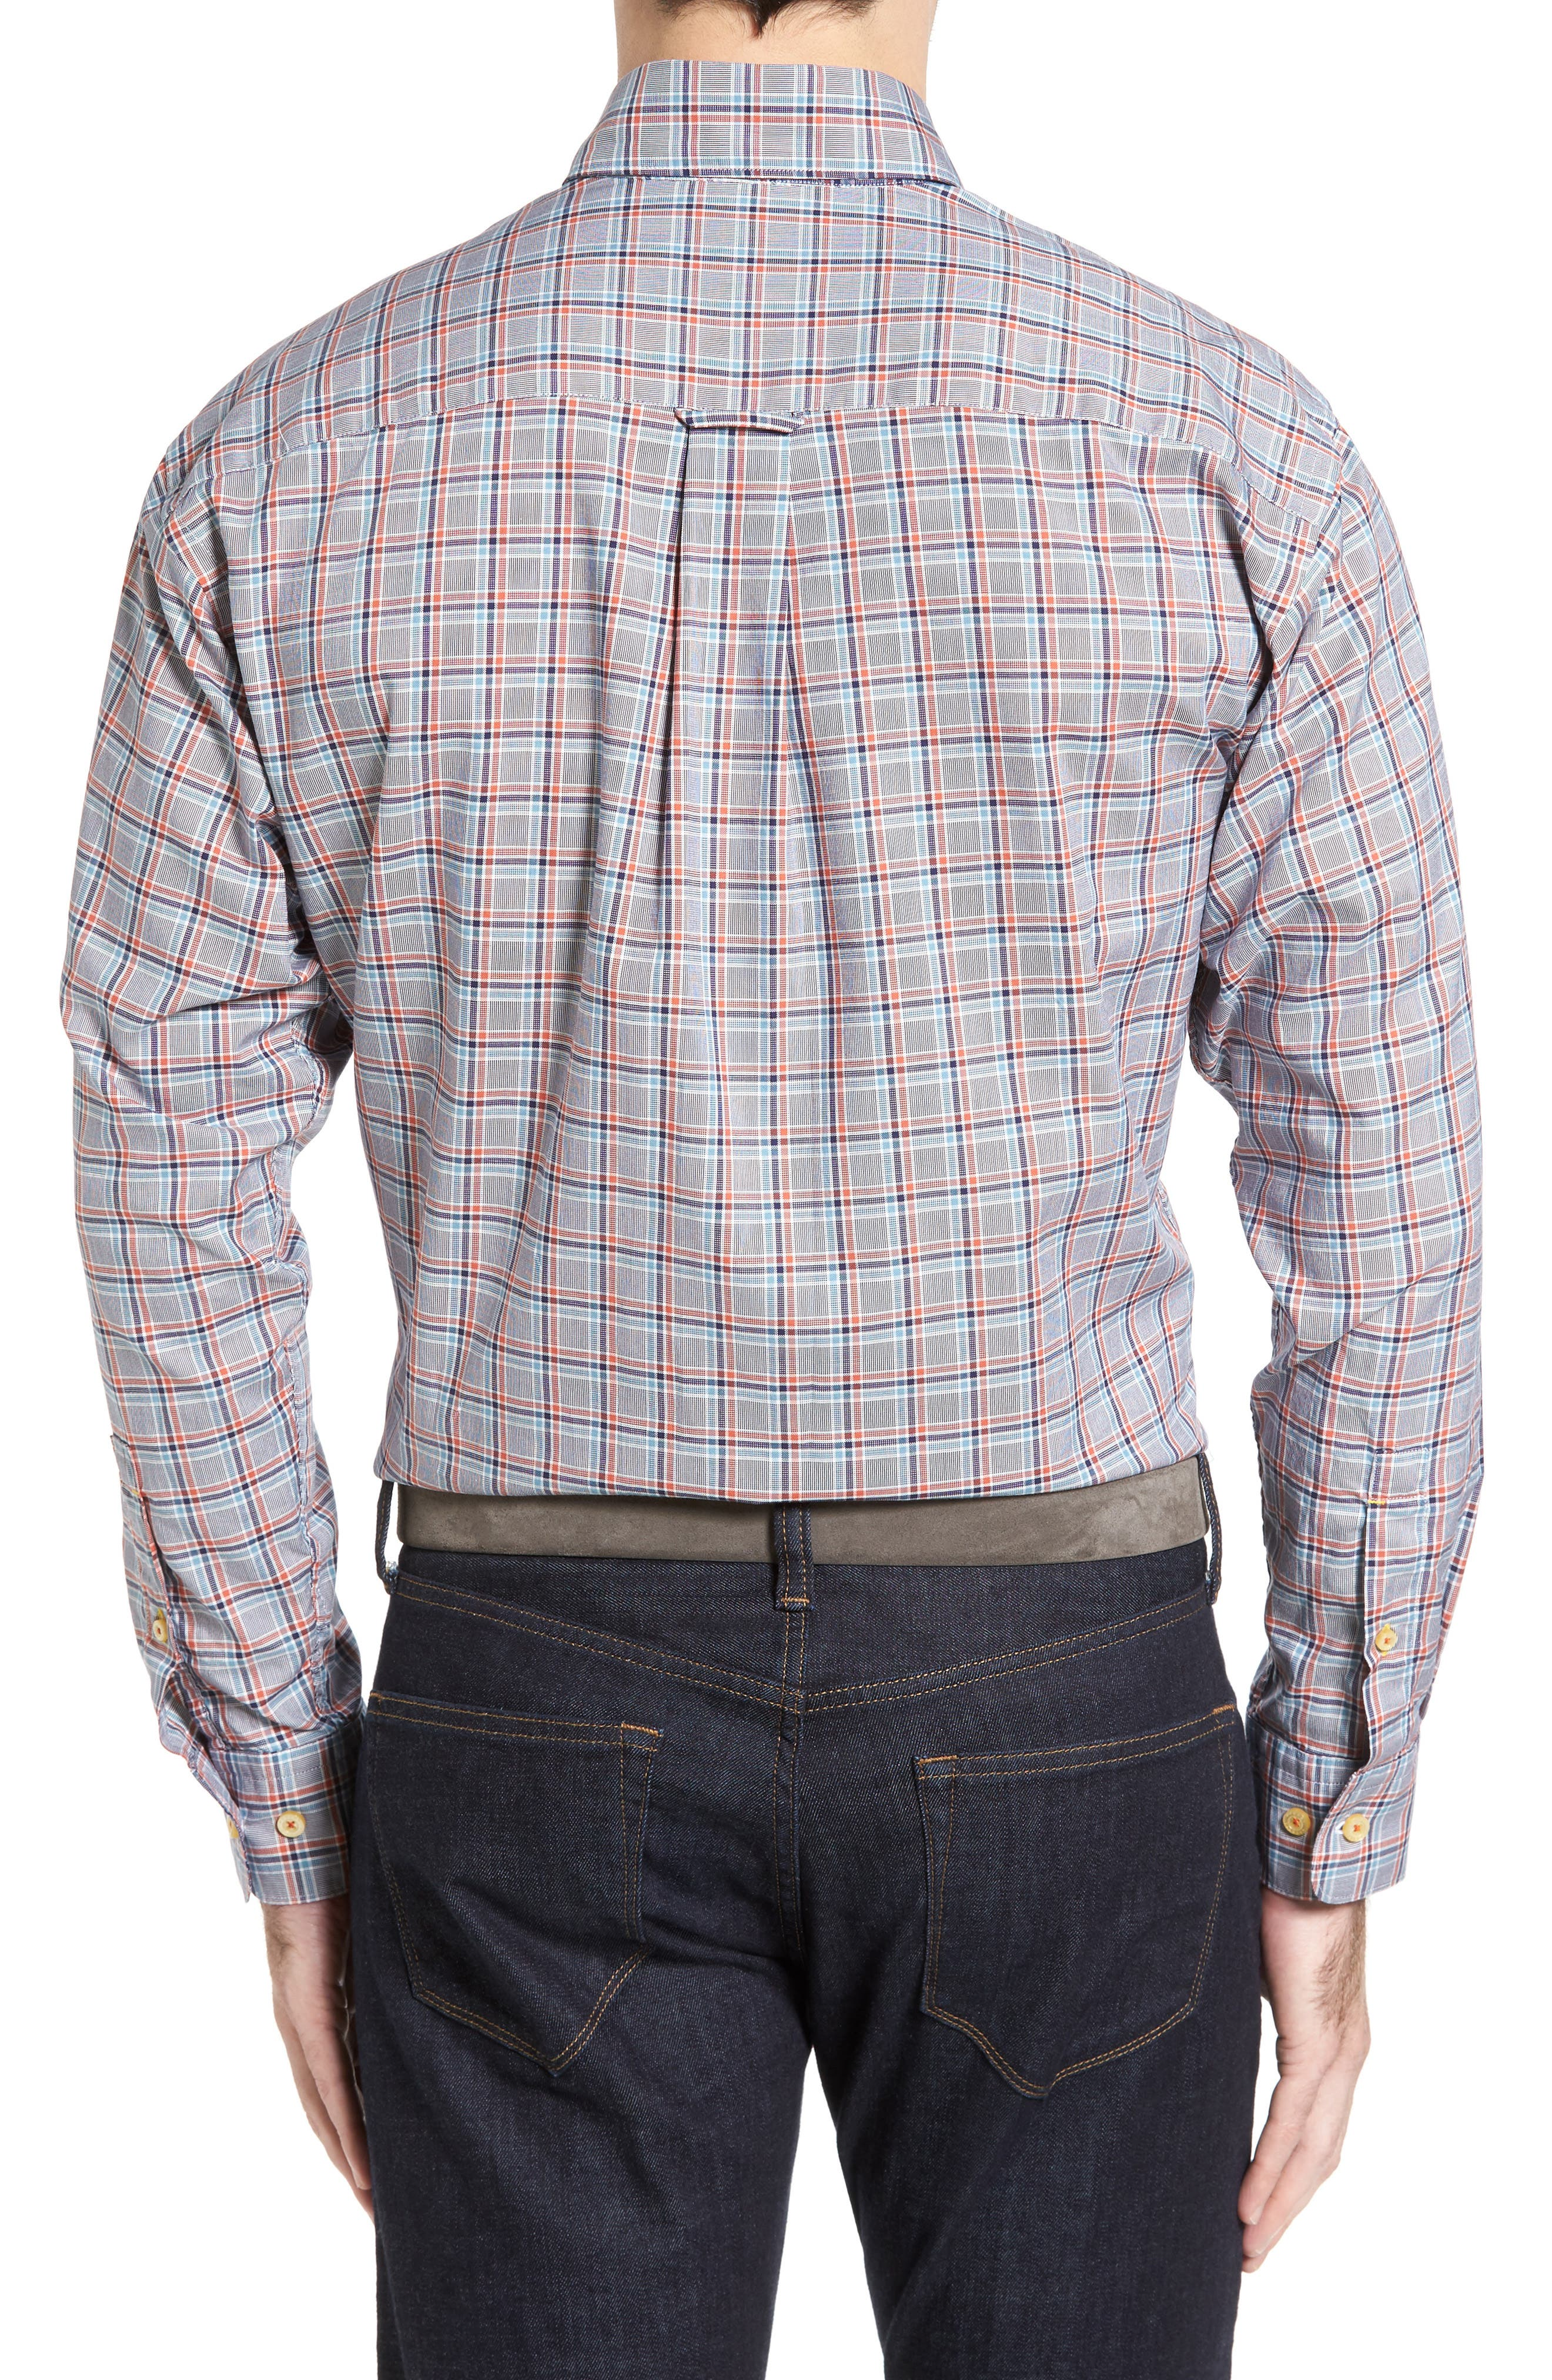 Anderson Classic Fit Plaid Oxford Sport Shirt,                             Alternate thumbnail 2, color,                             Navy